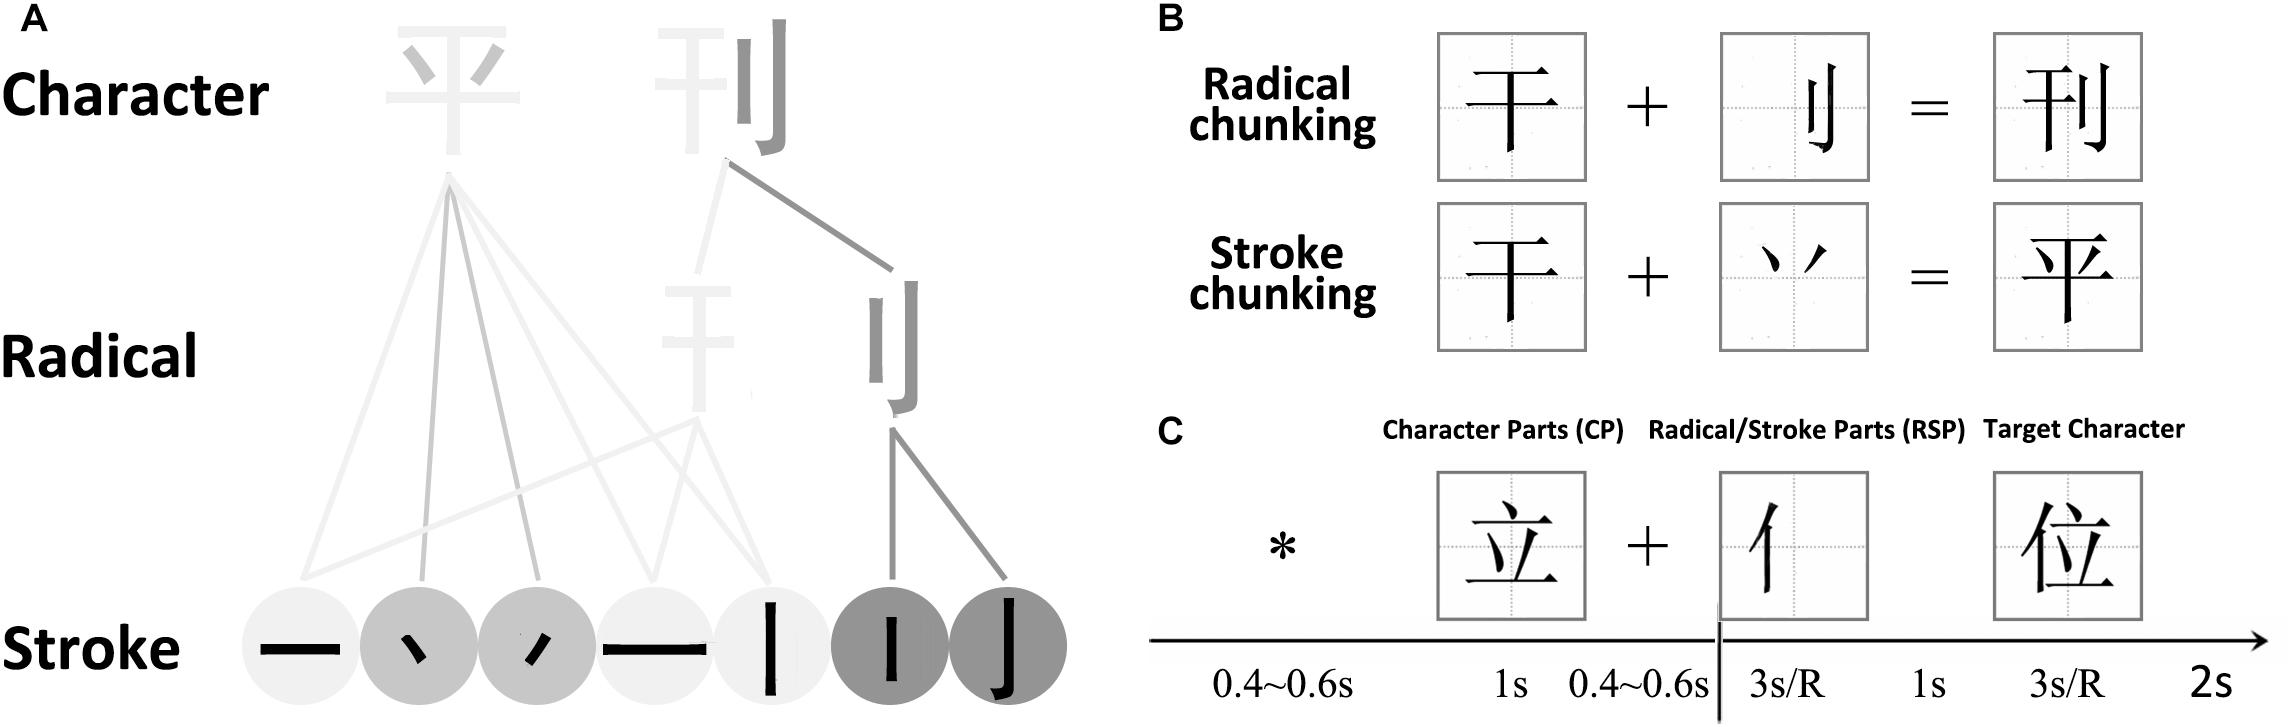 Frontiers | Resolving the Electroencephalographic Correlates